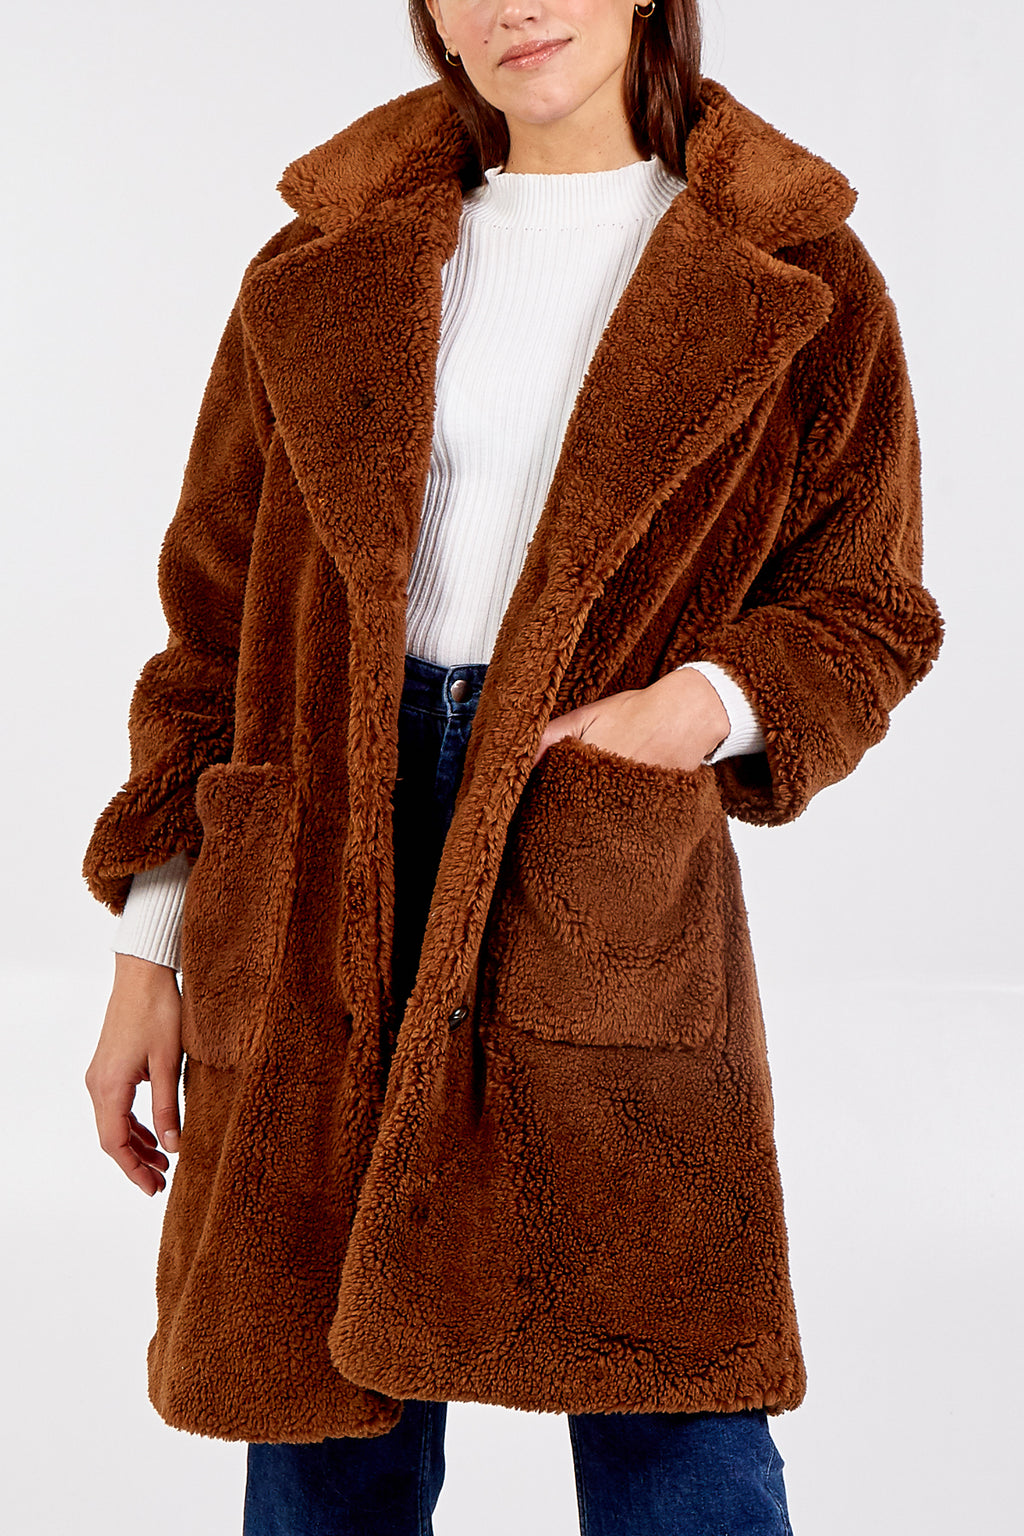 Patch Pocket Teddy Coat